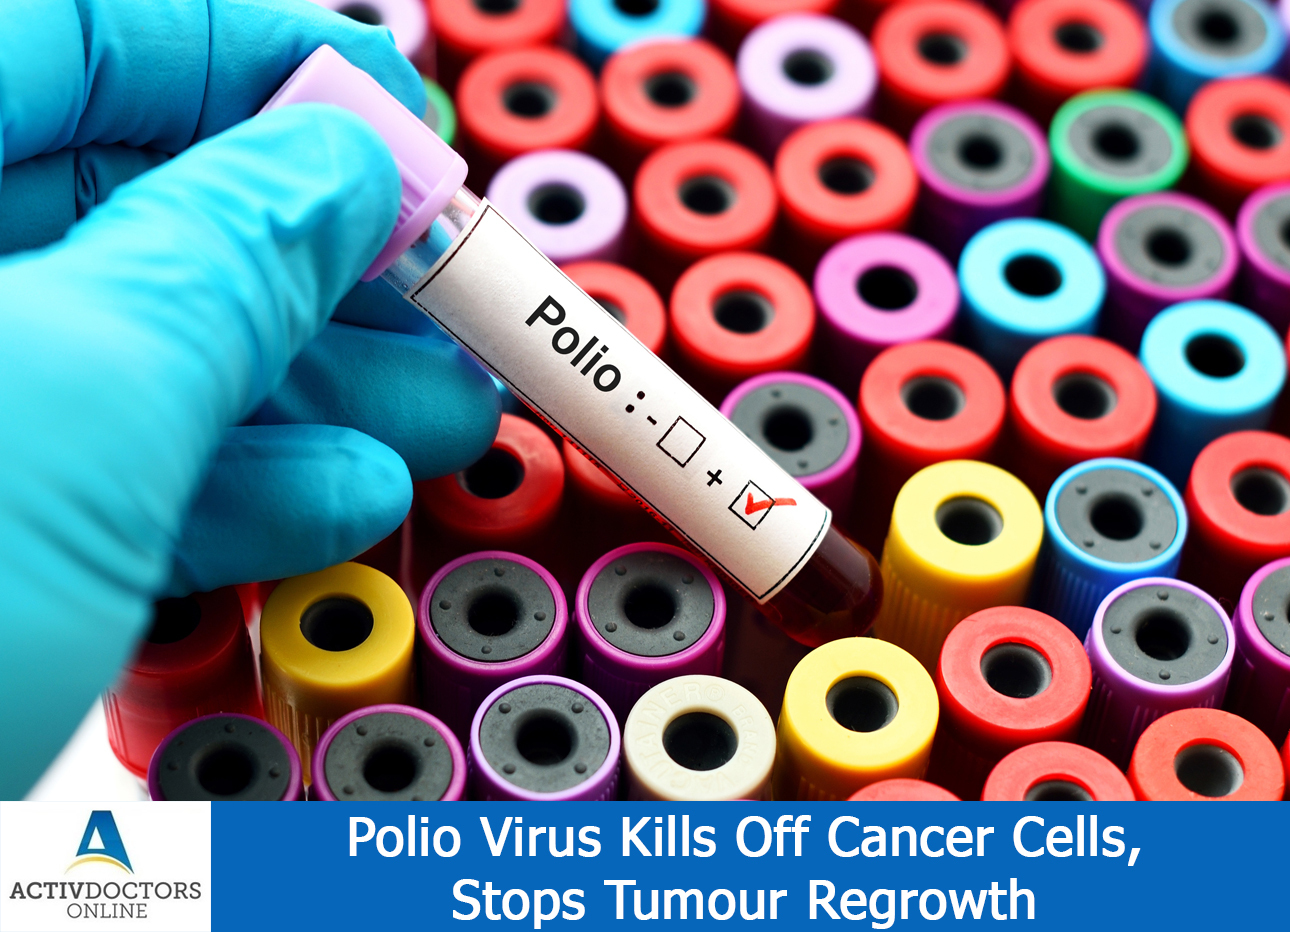 Polio Virus Kills Off Cancer Cells, Stops Tumour Regrowth